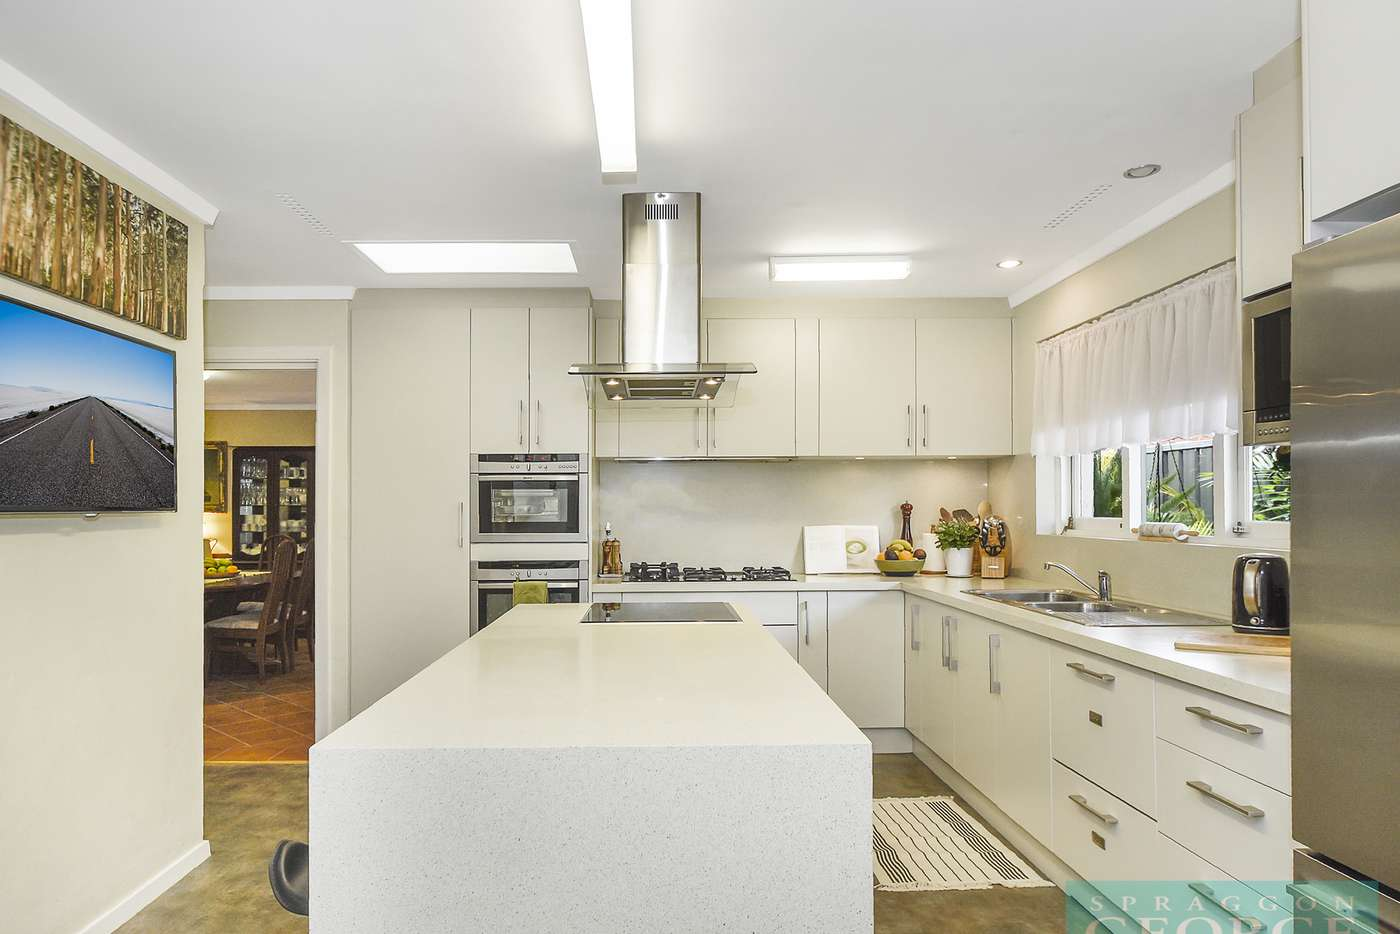 Seventh view of Homely house listing, 33 Minerva Way, Carine WA 6020